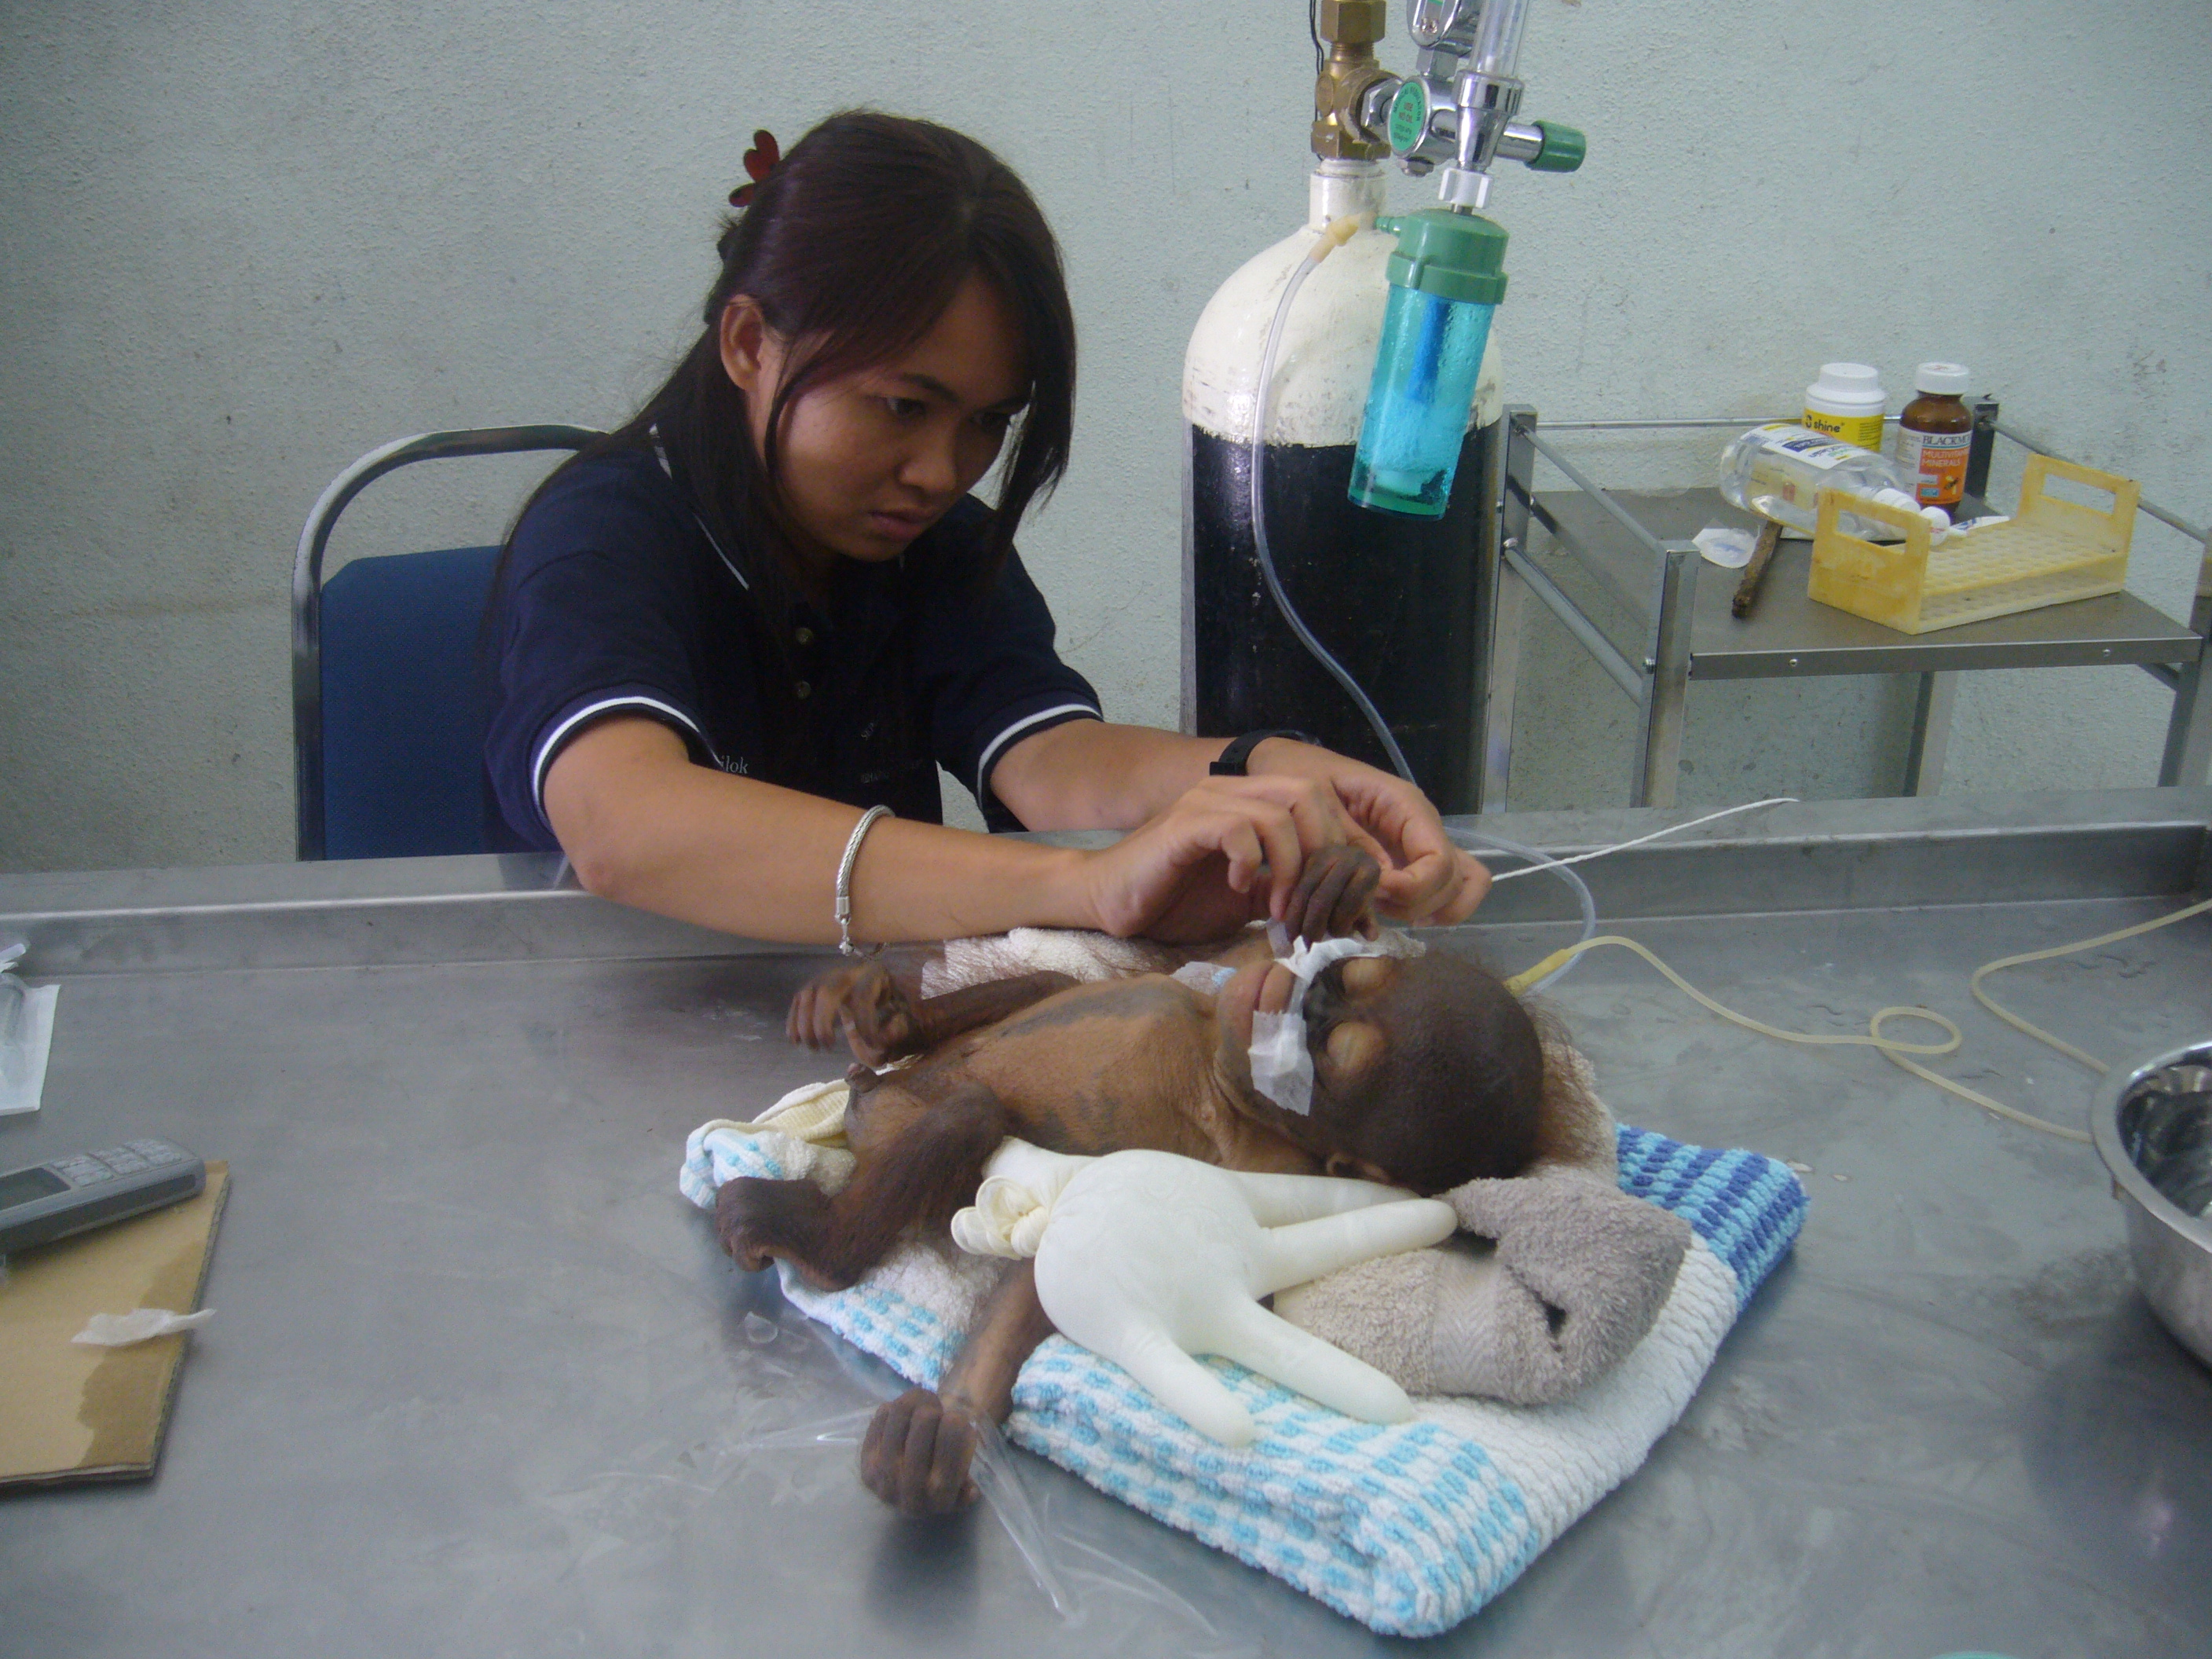 Dr C Treating Baby Ceria On His Arrival